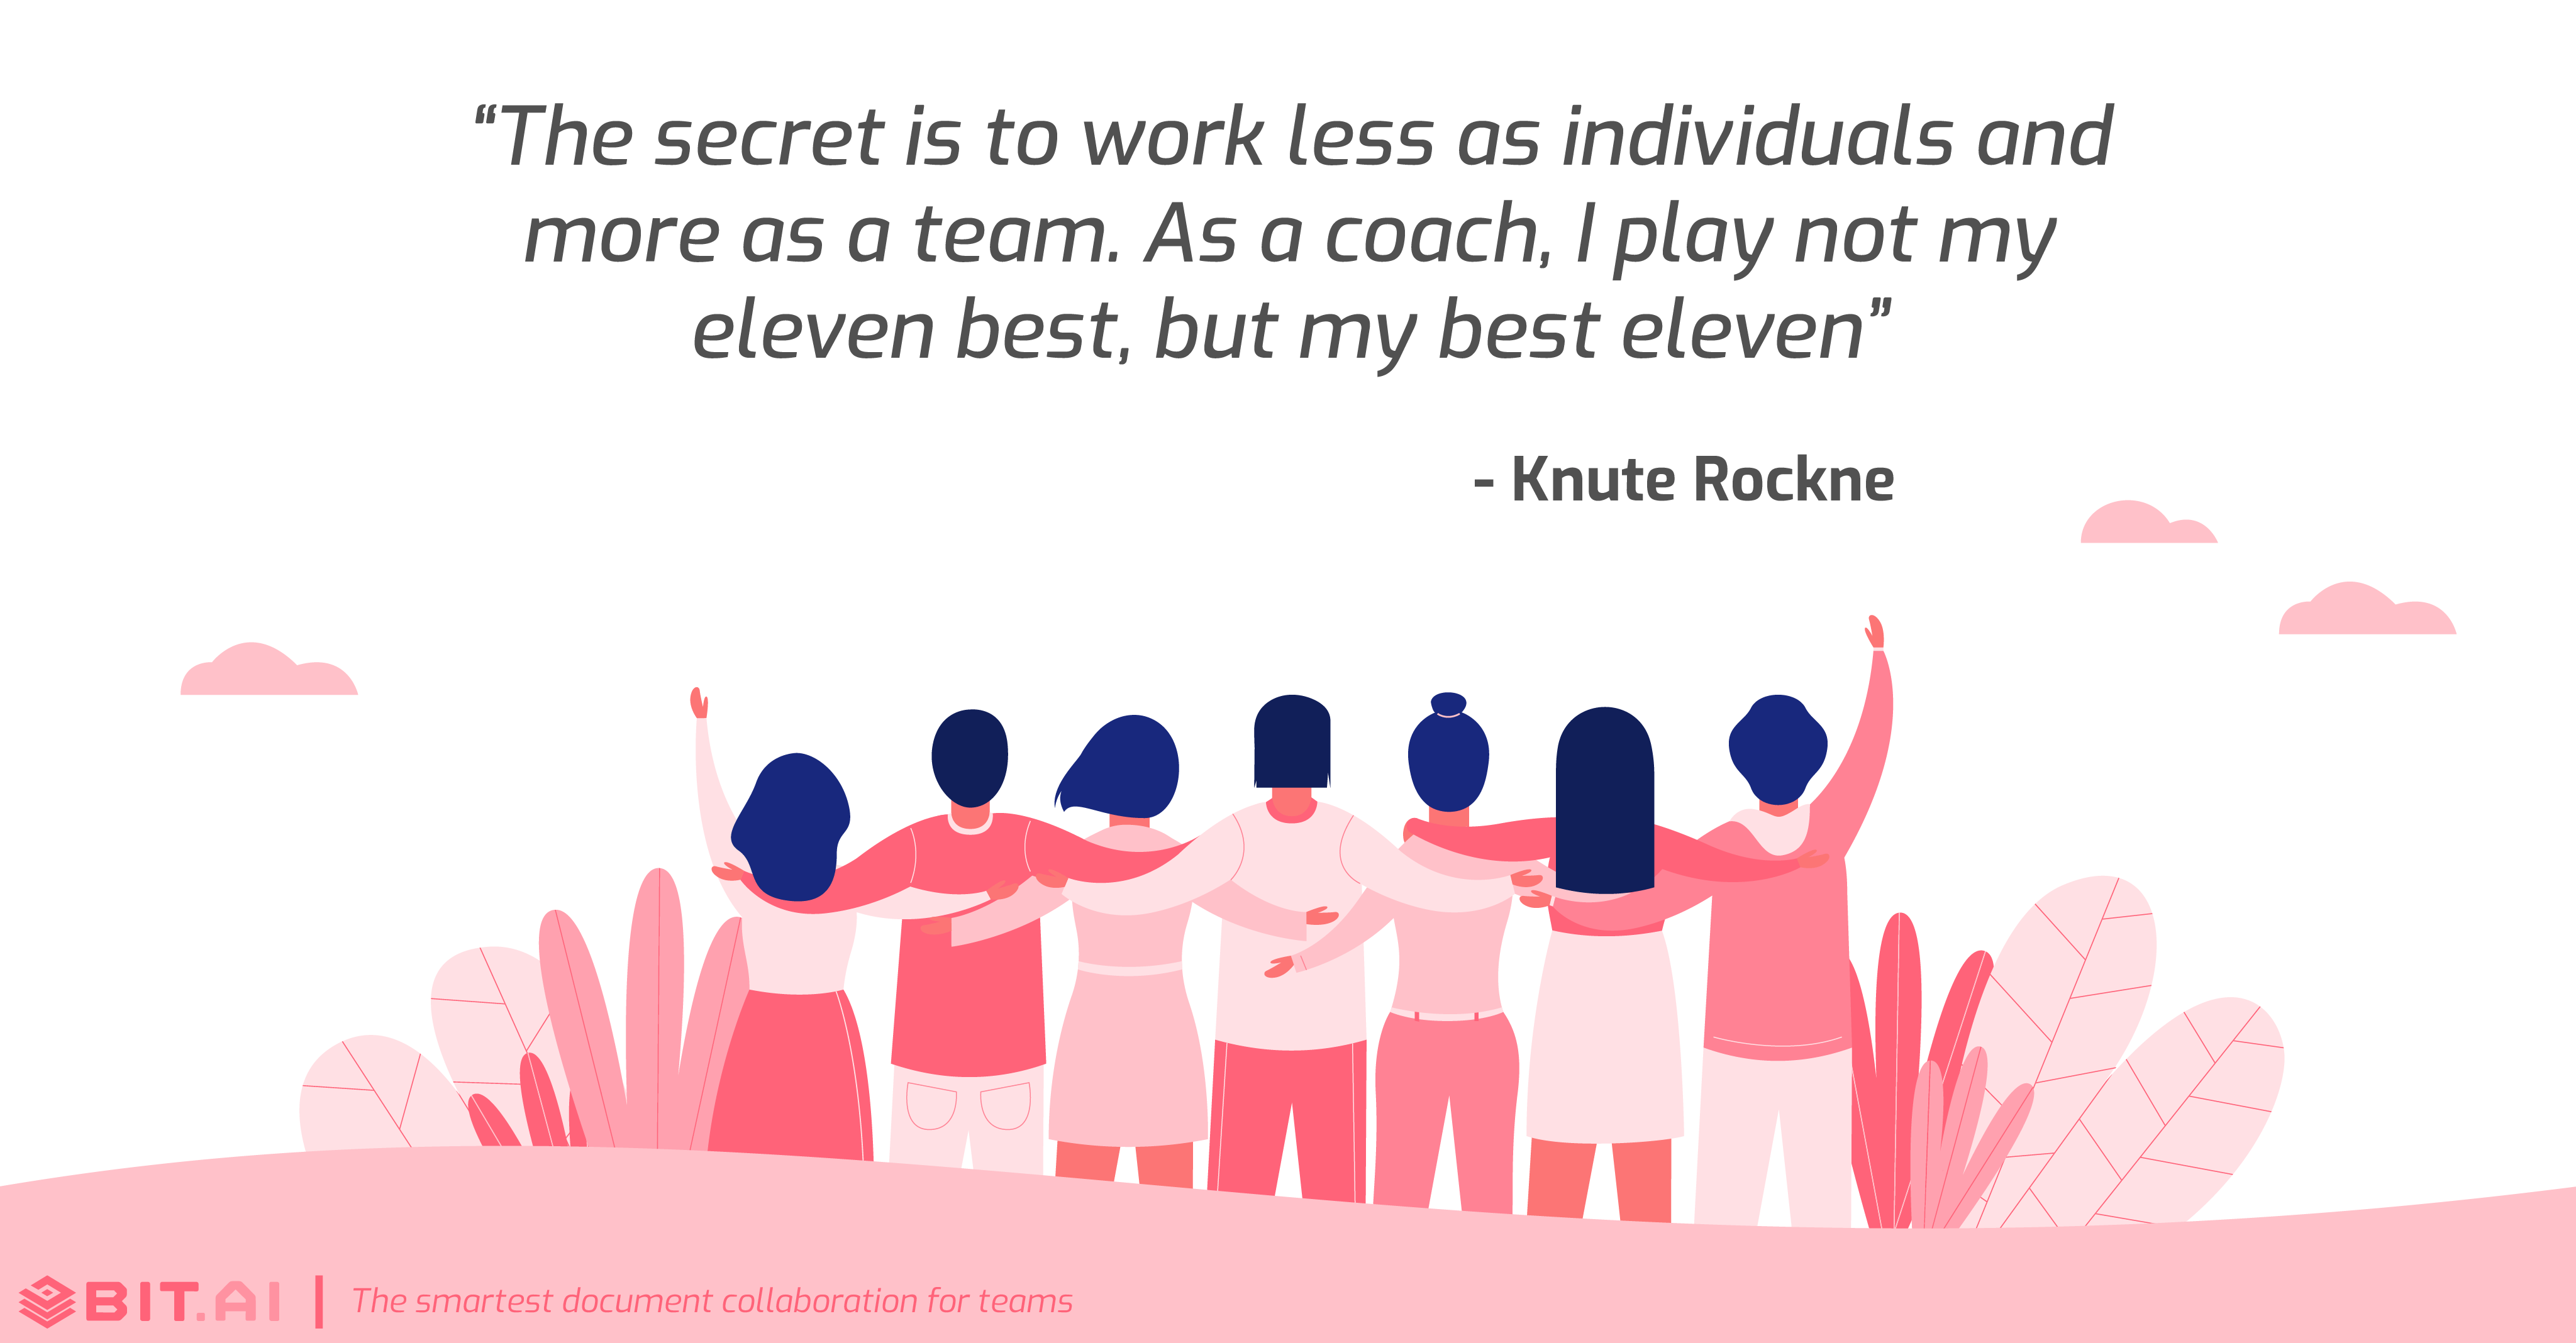 Teamwork collaboration quote: The secret is to work less as individuals and more as a team.